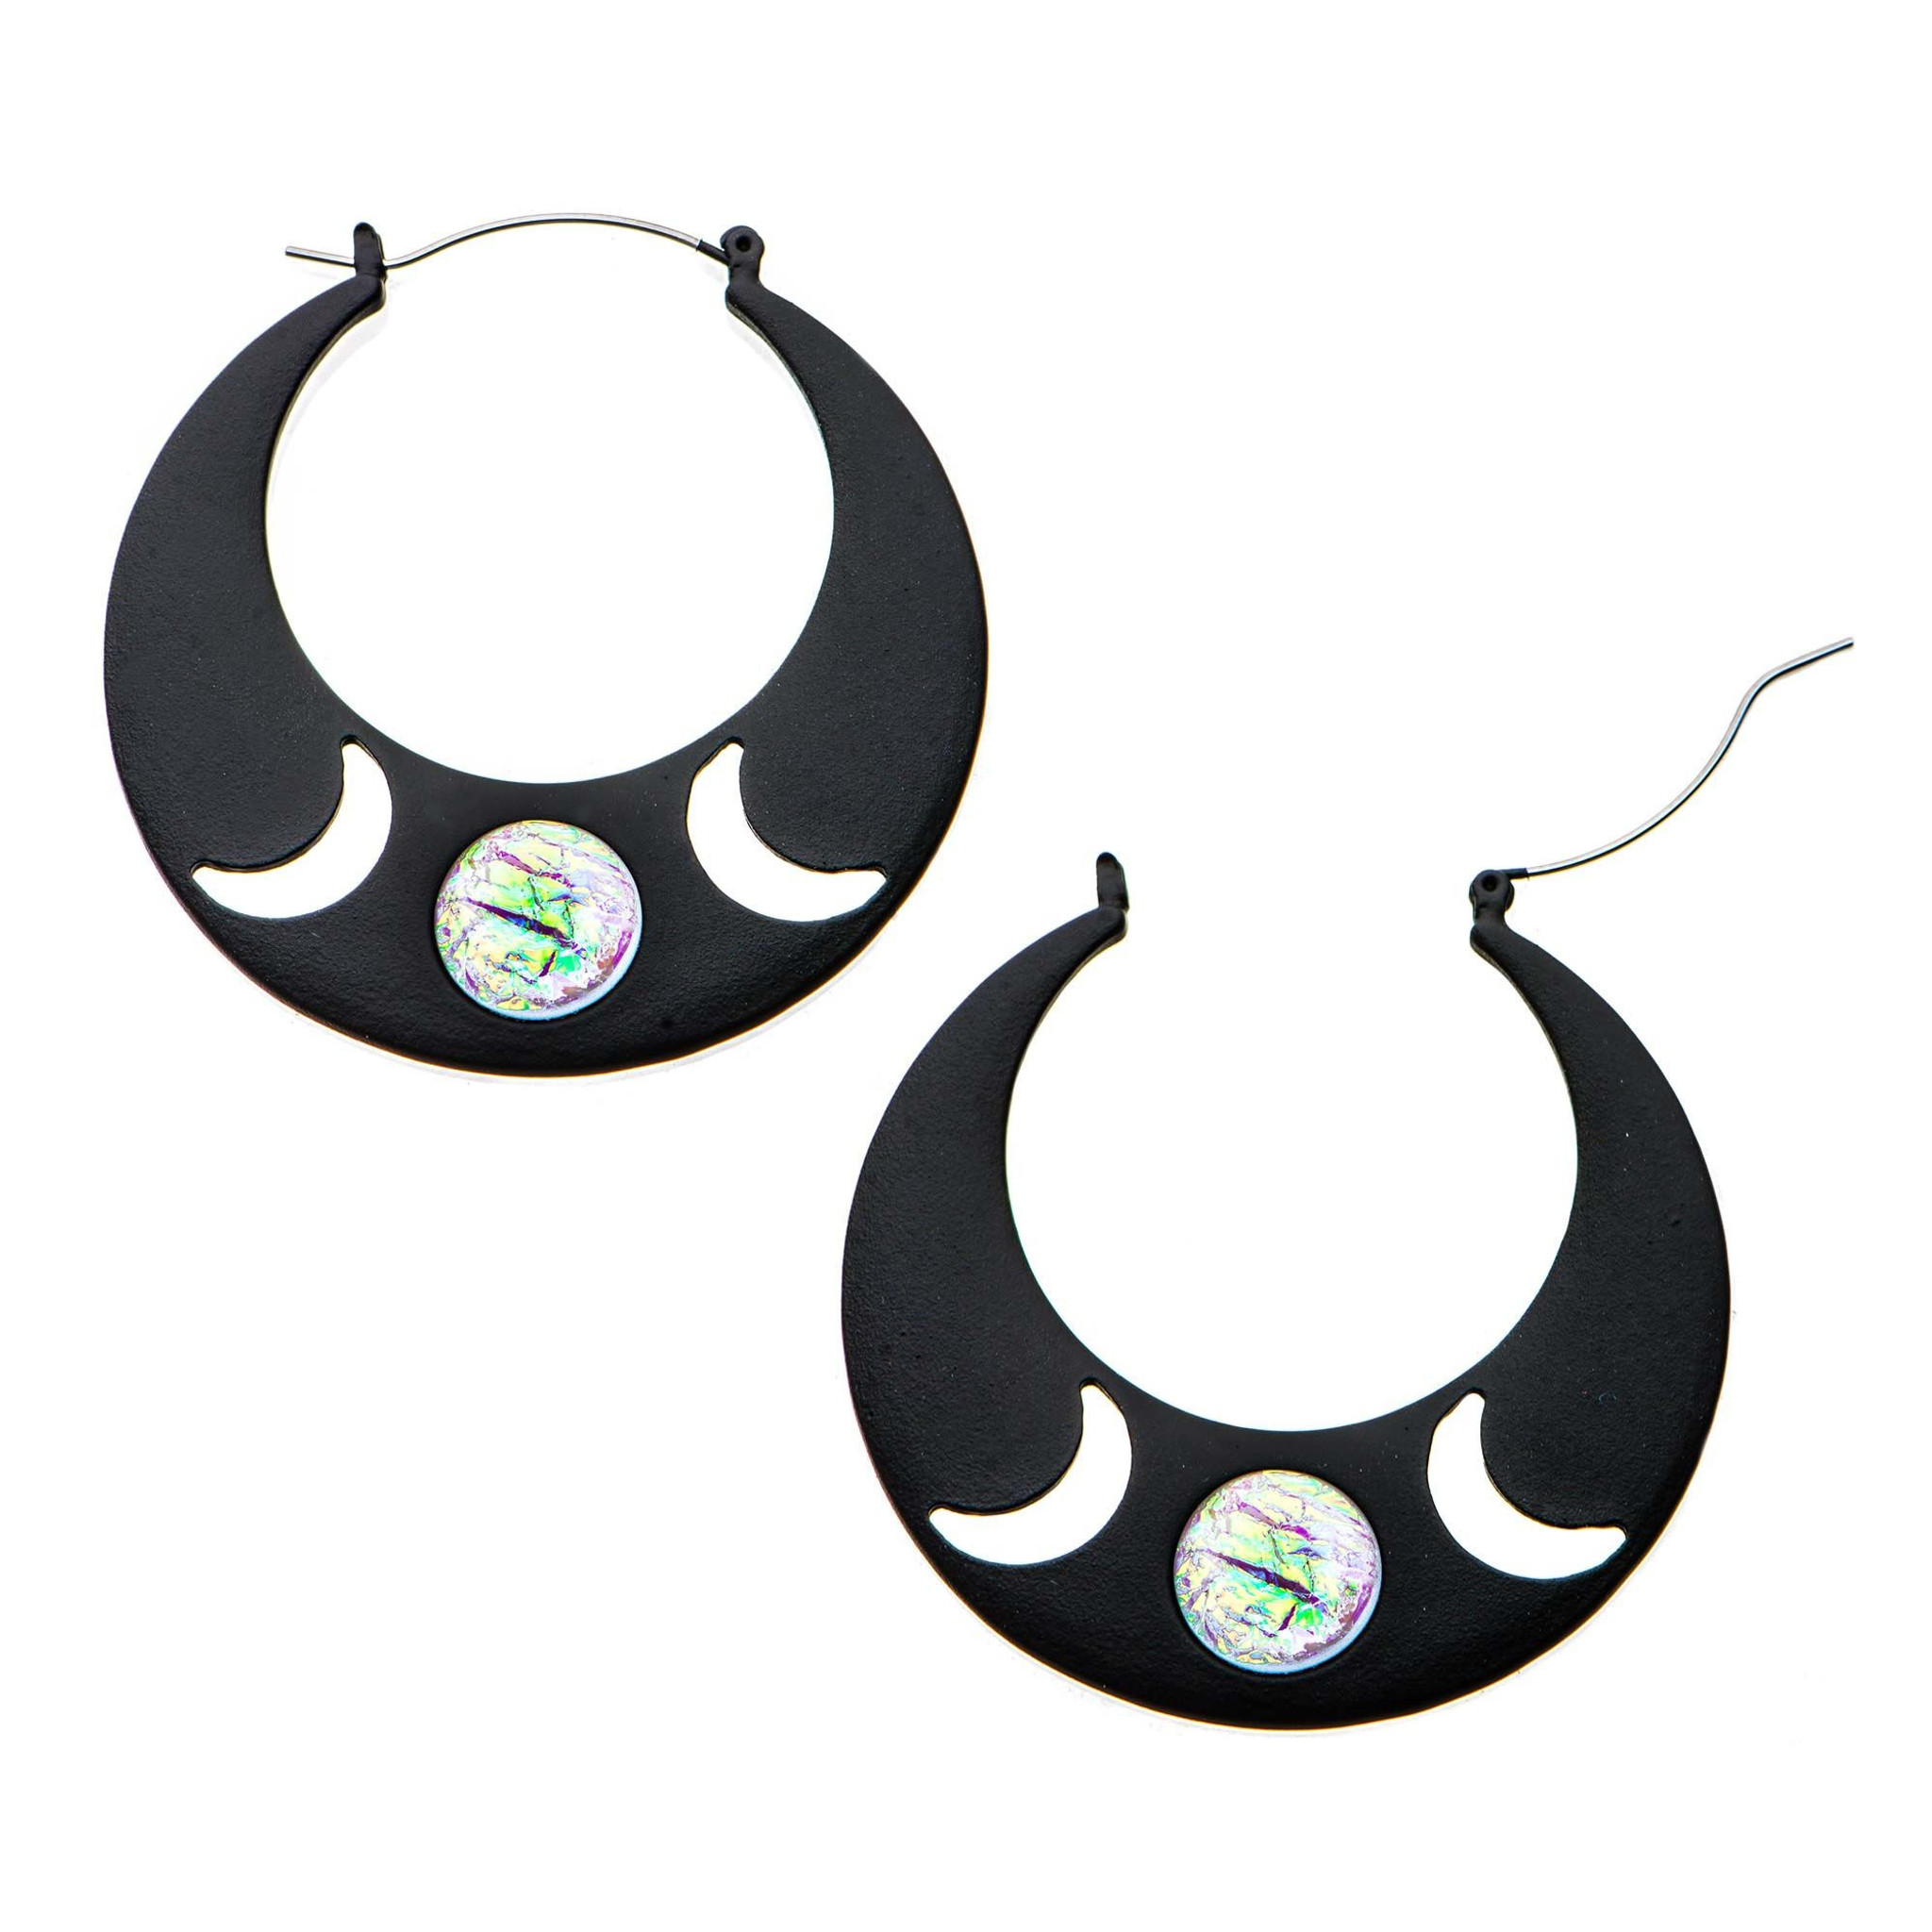 Triple Goddess earrings